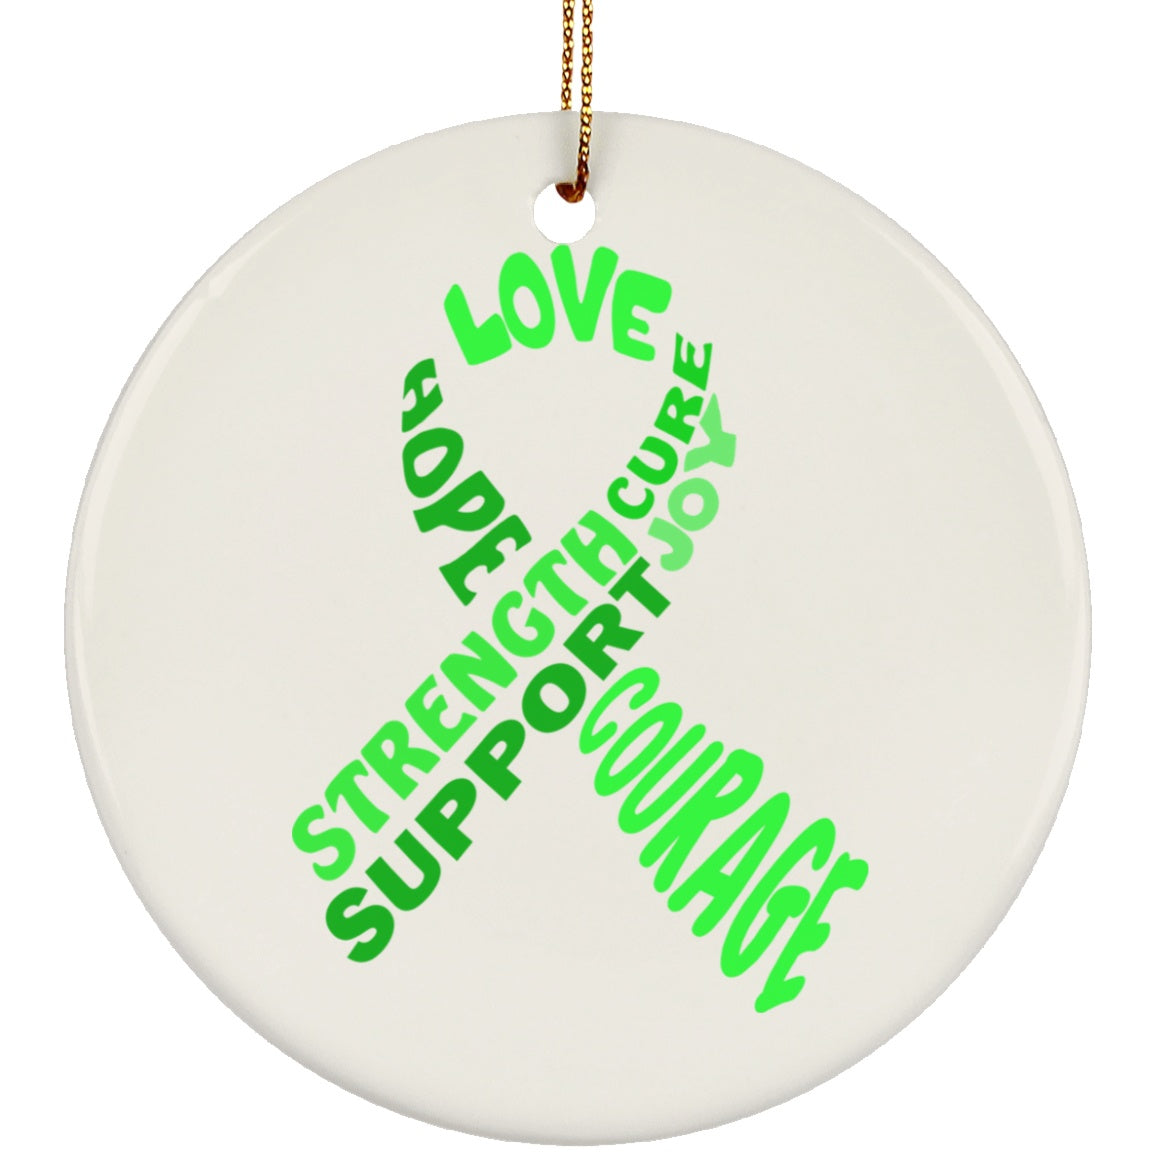 Green Awareness Ribbon With Words Circle Ornament - The Unchargeables